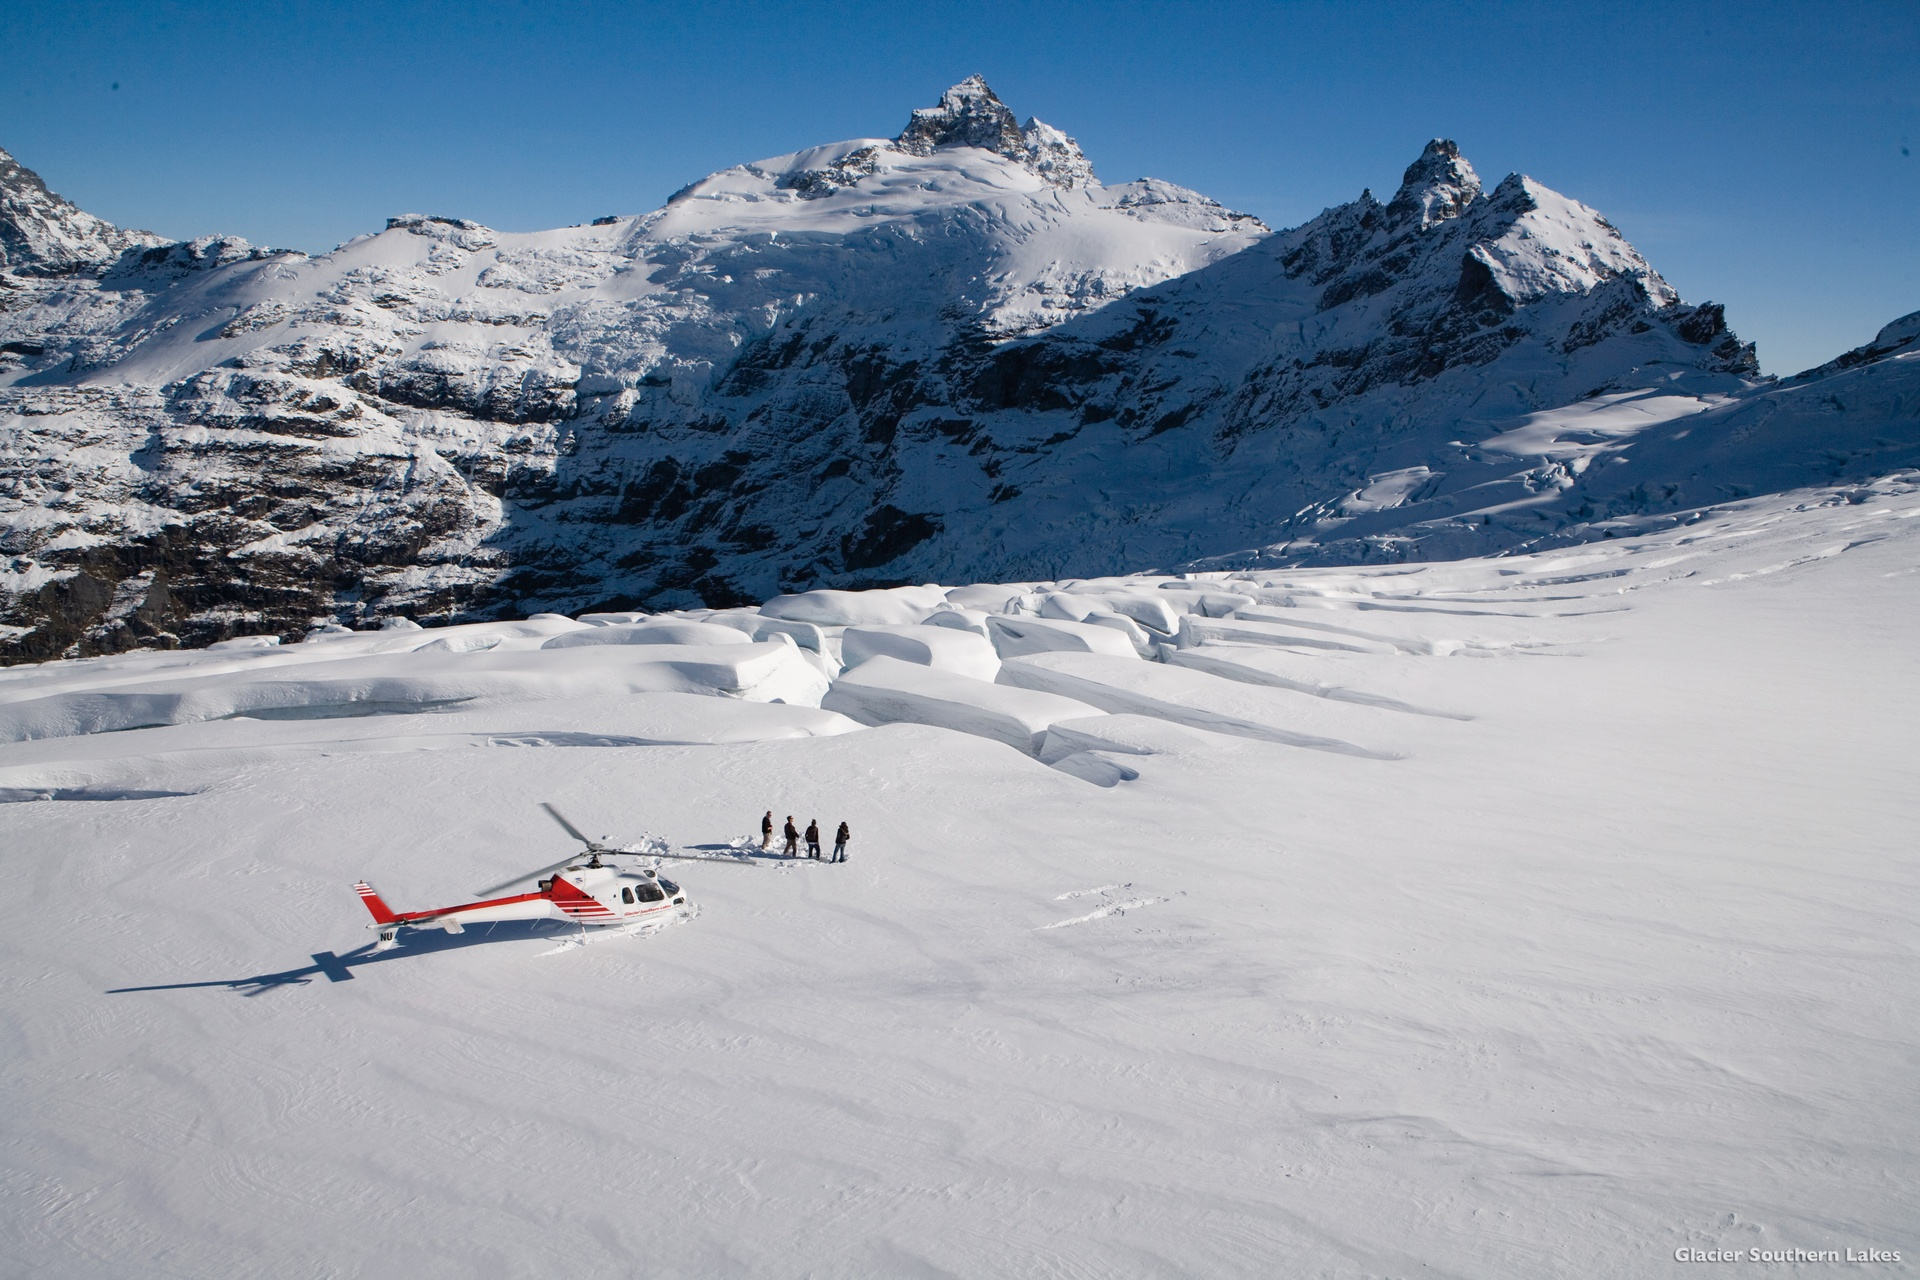 Glacier Helicopter Landing - Luxury Touring New Zealand